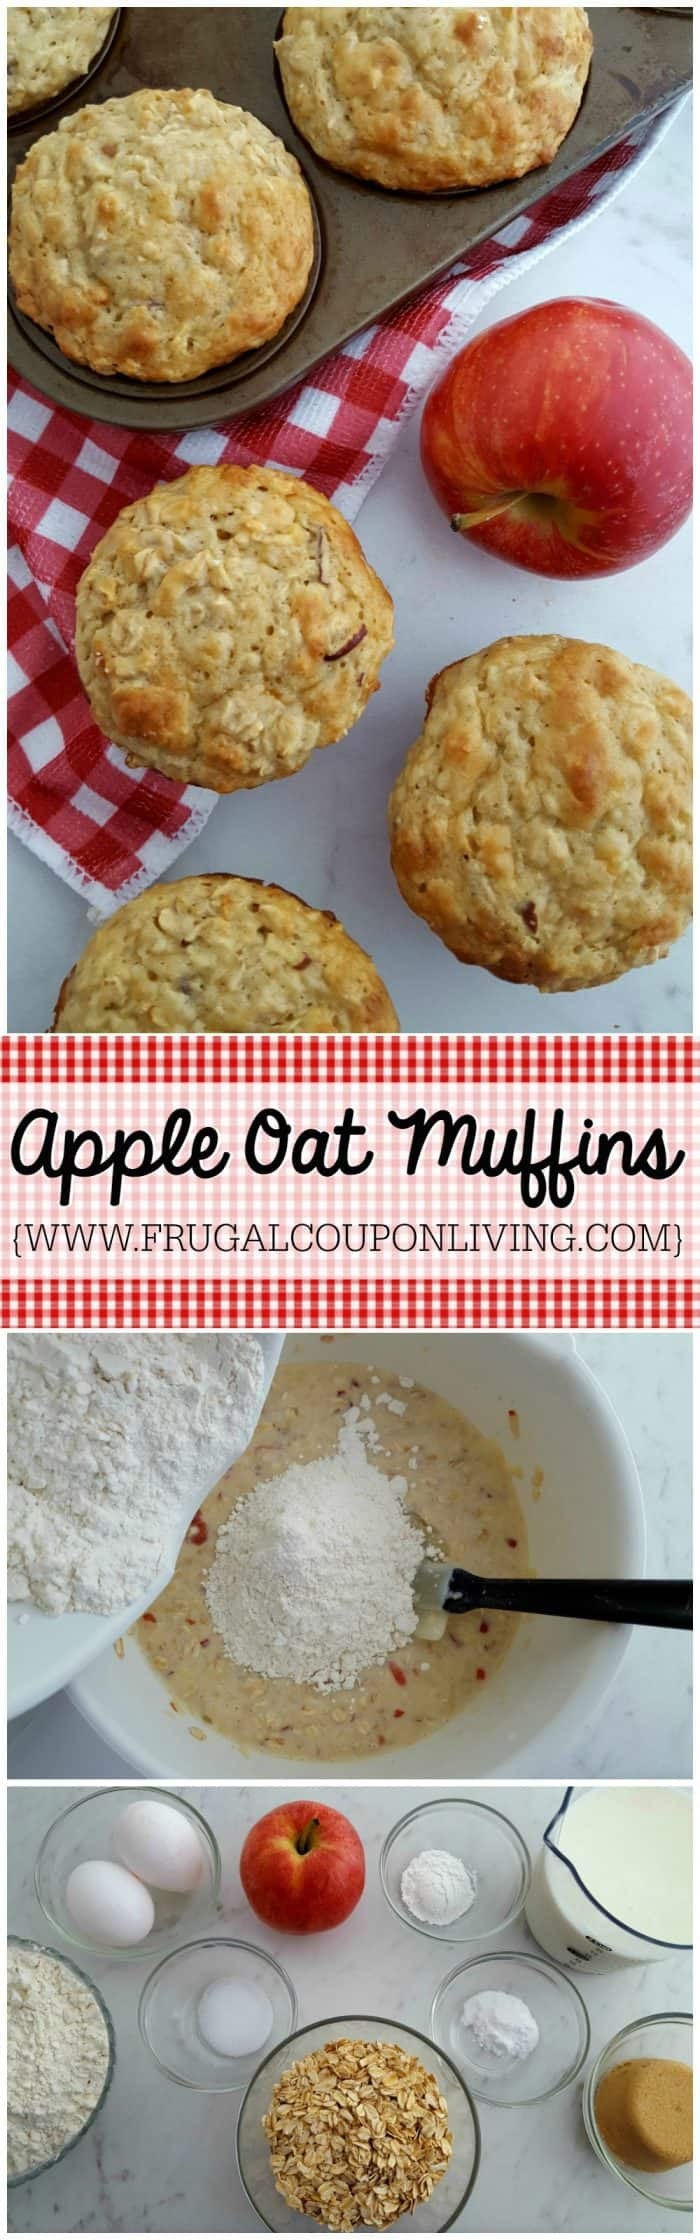 apple-oatmeal-muffins-frugal-coupon-living-long